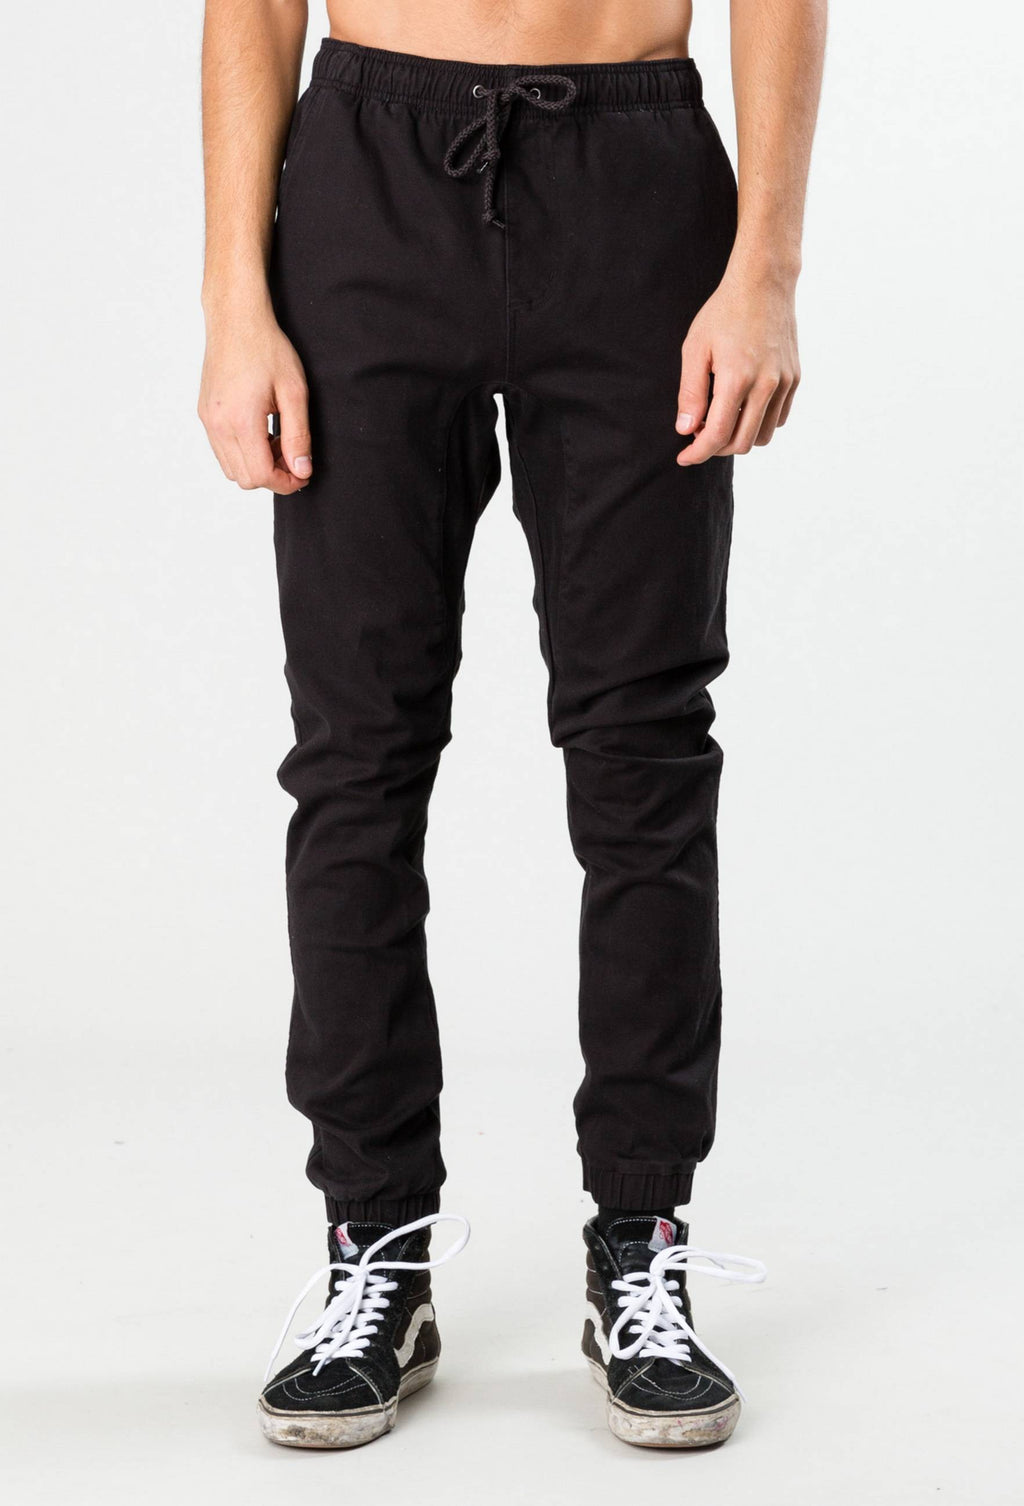 Hook Out Beach Pant Boys Black